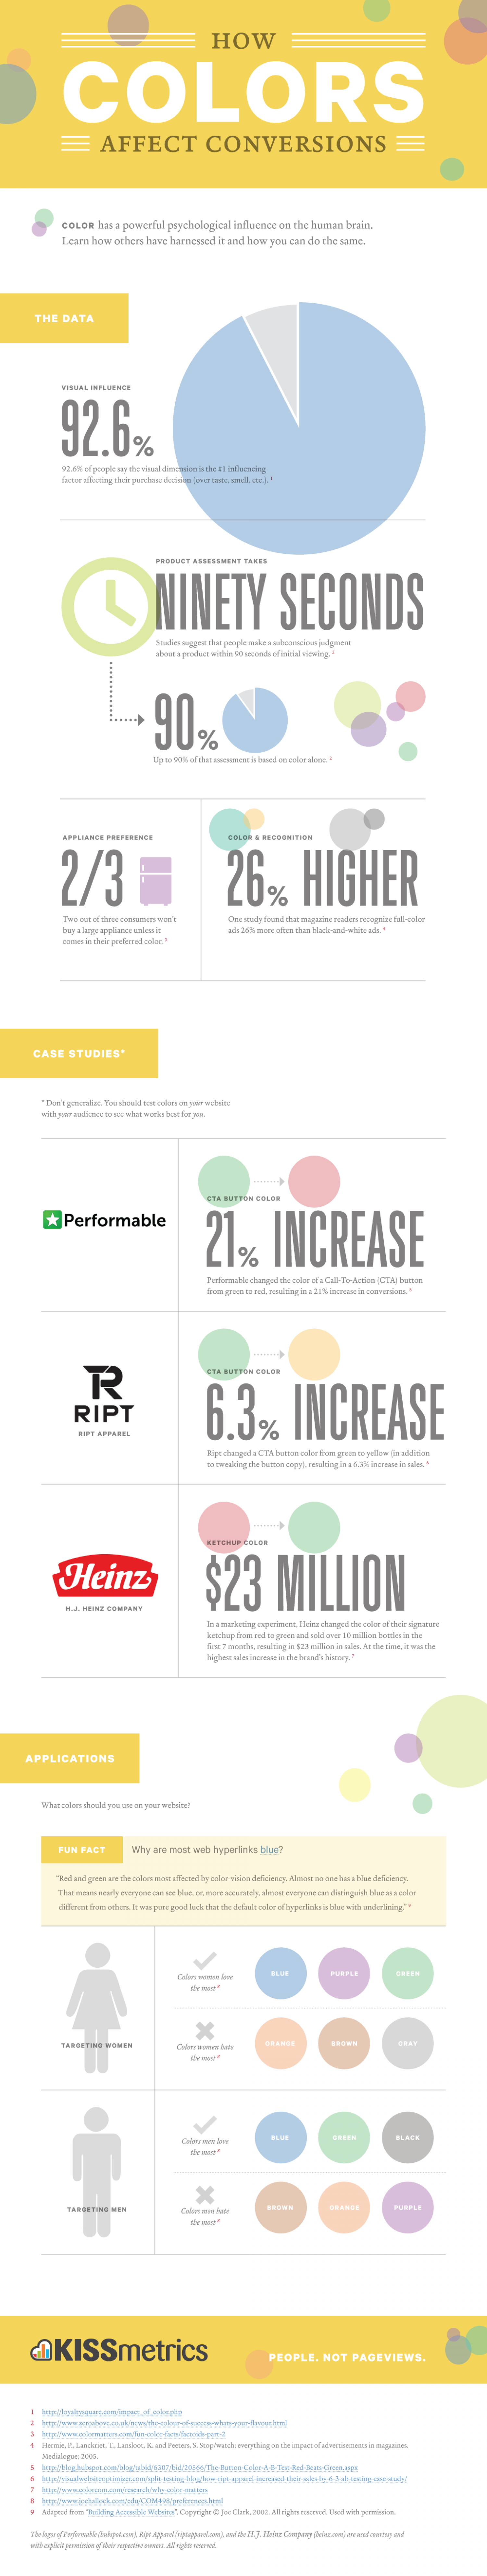 How Colors Affect Conversions Infographic